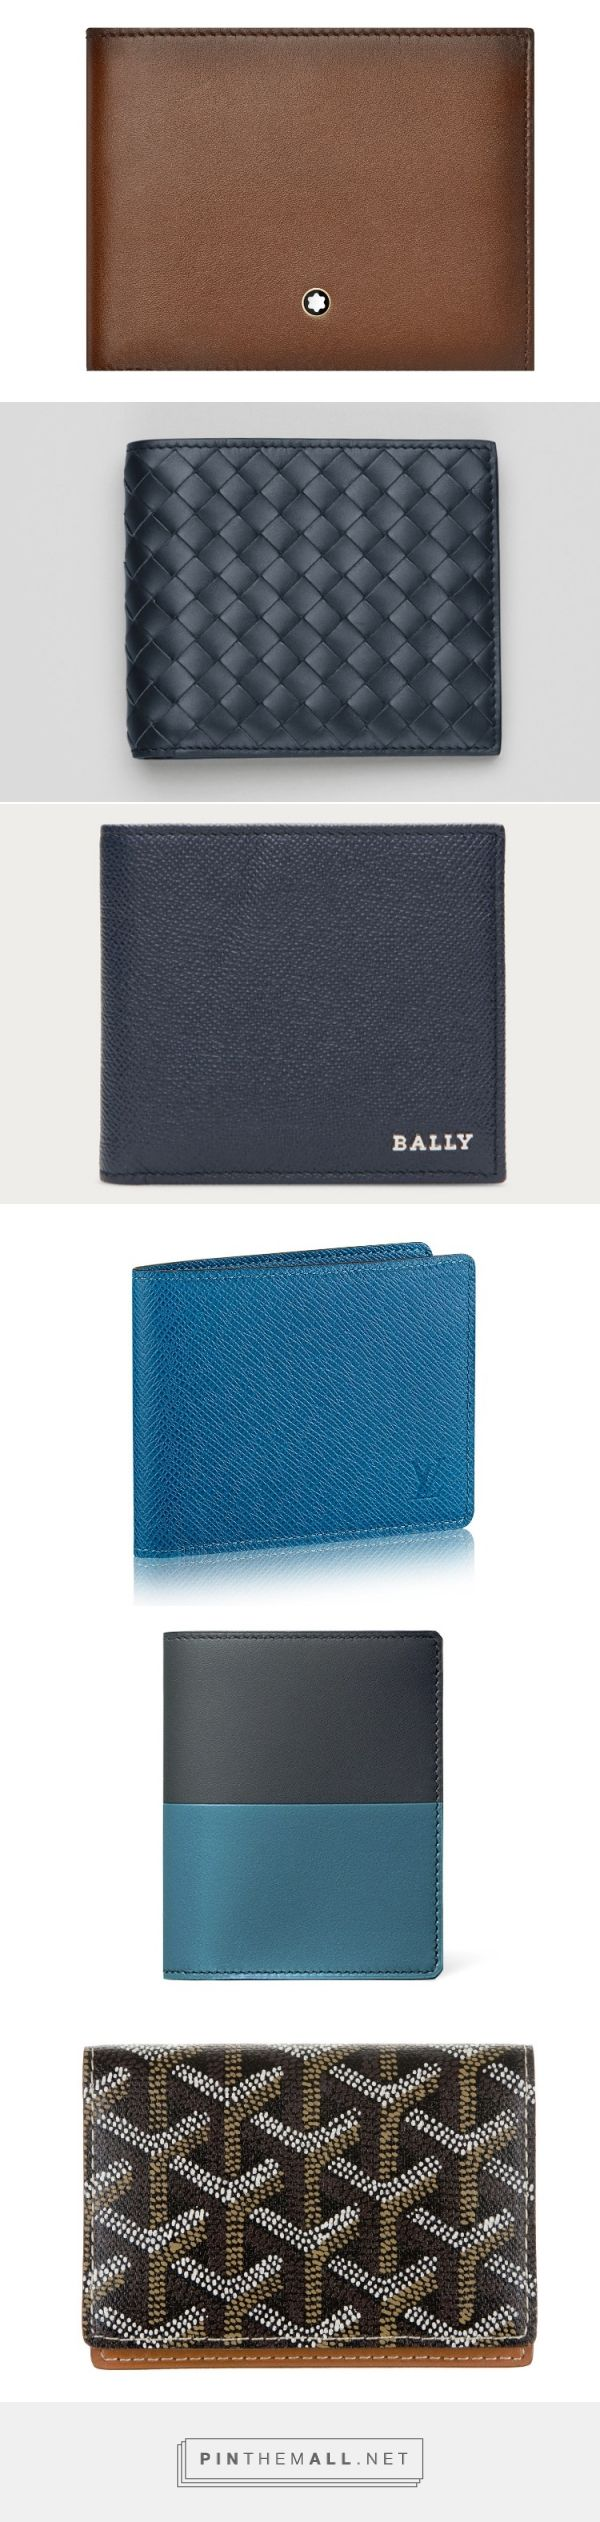 10 Wallet Brands for the Man of Luxury